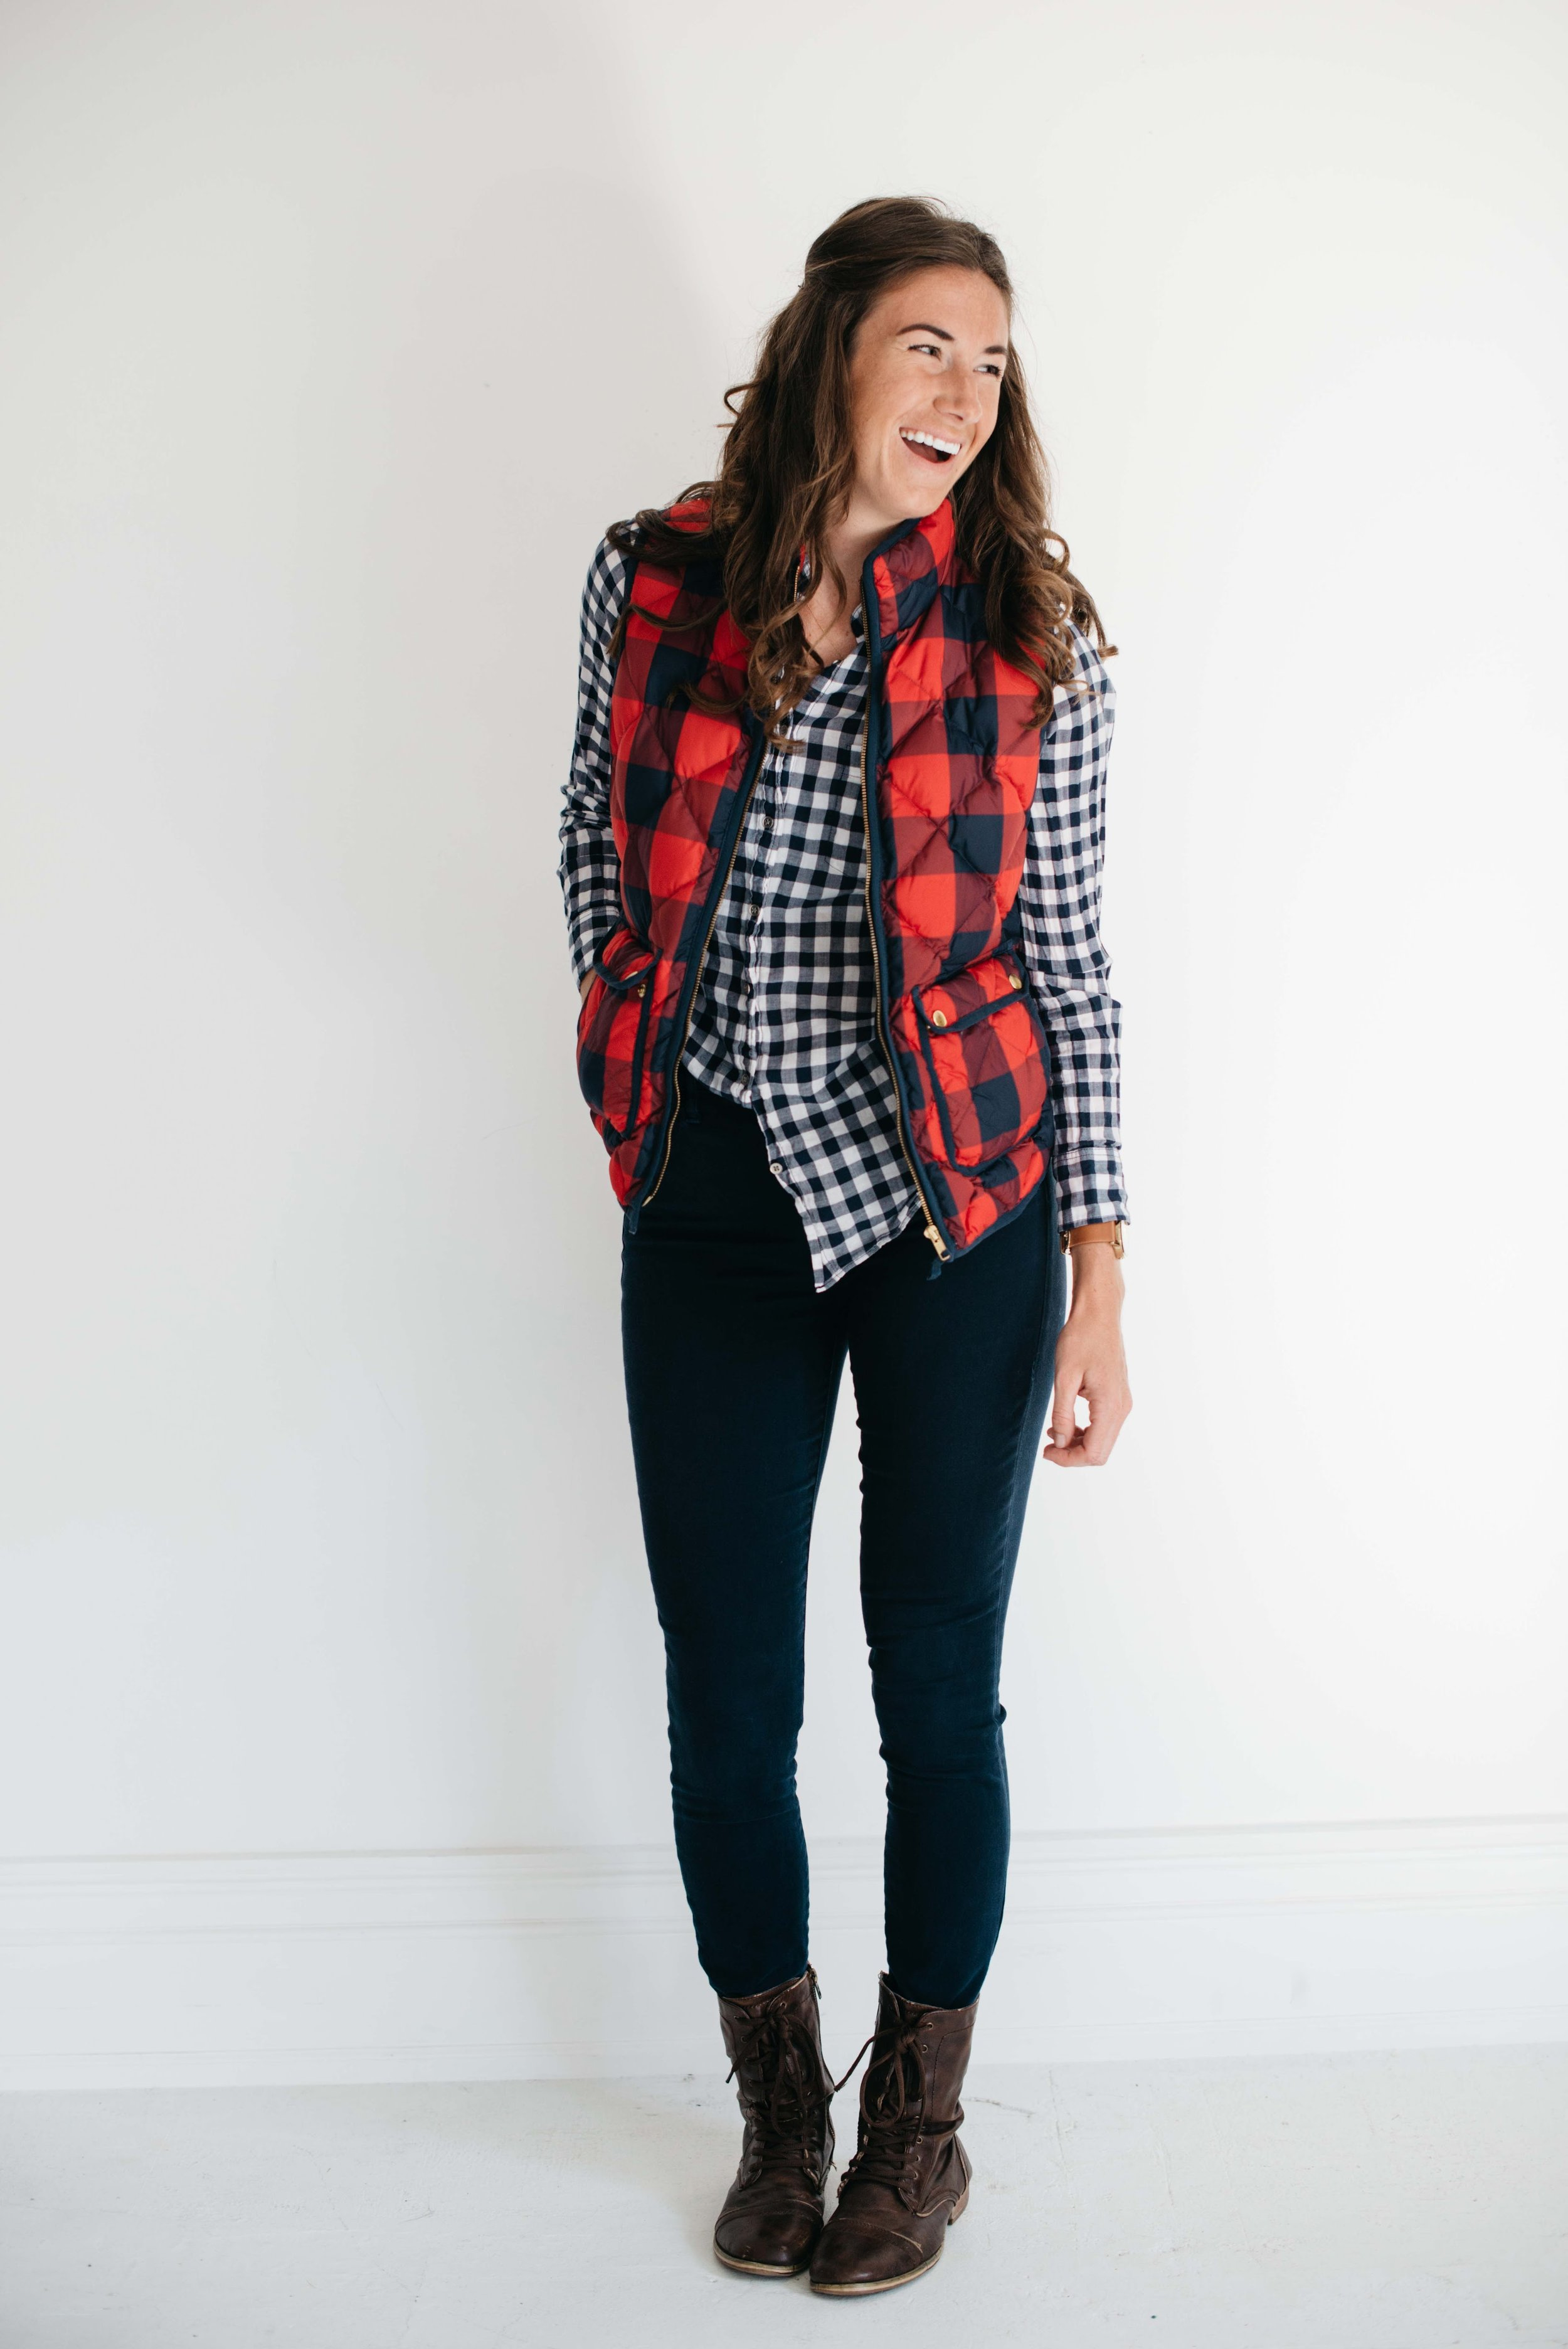 Or you can half-tuck the shirt it to make it a little spunky.